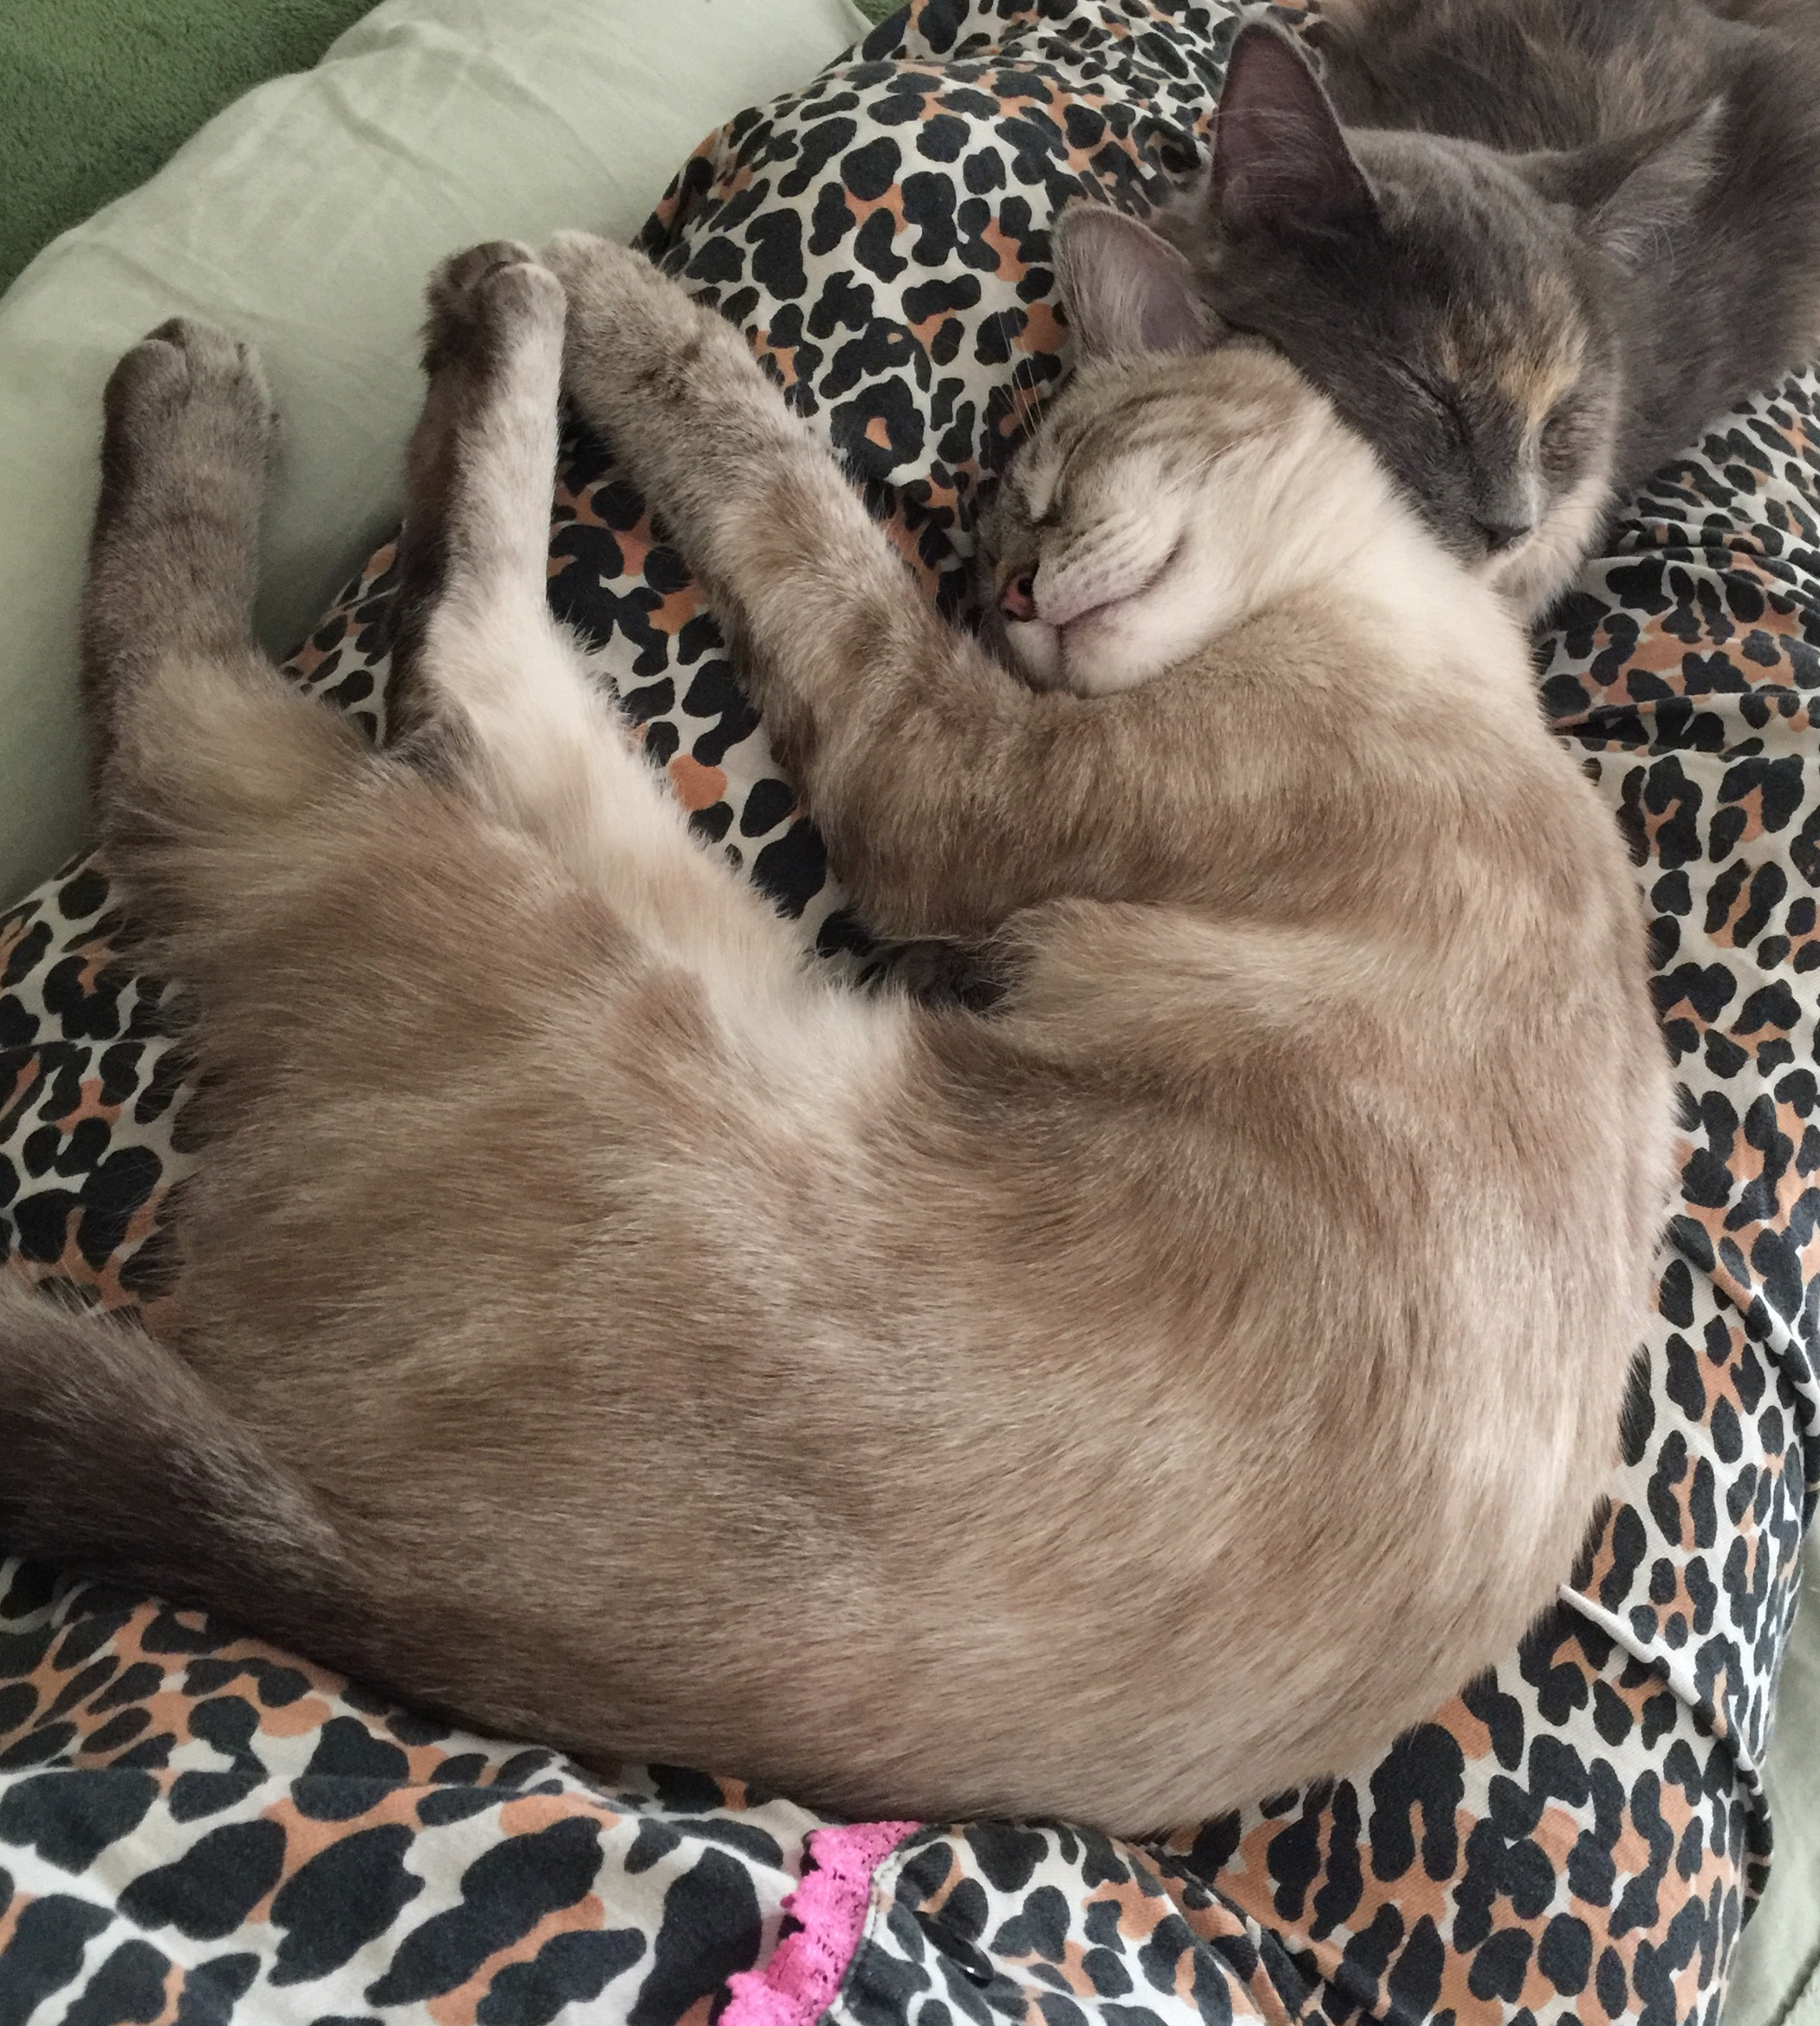 Graduates of the Forgotten Kitten Project, Aspen and Willow Leaf, formerly known as just Leaf, cuddle at their home. Photo contributed